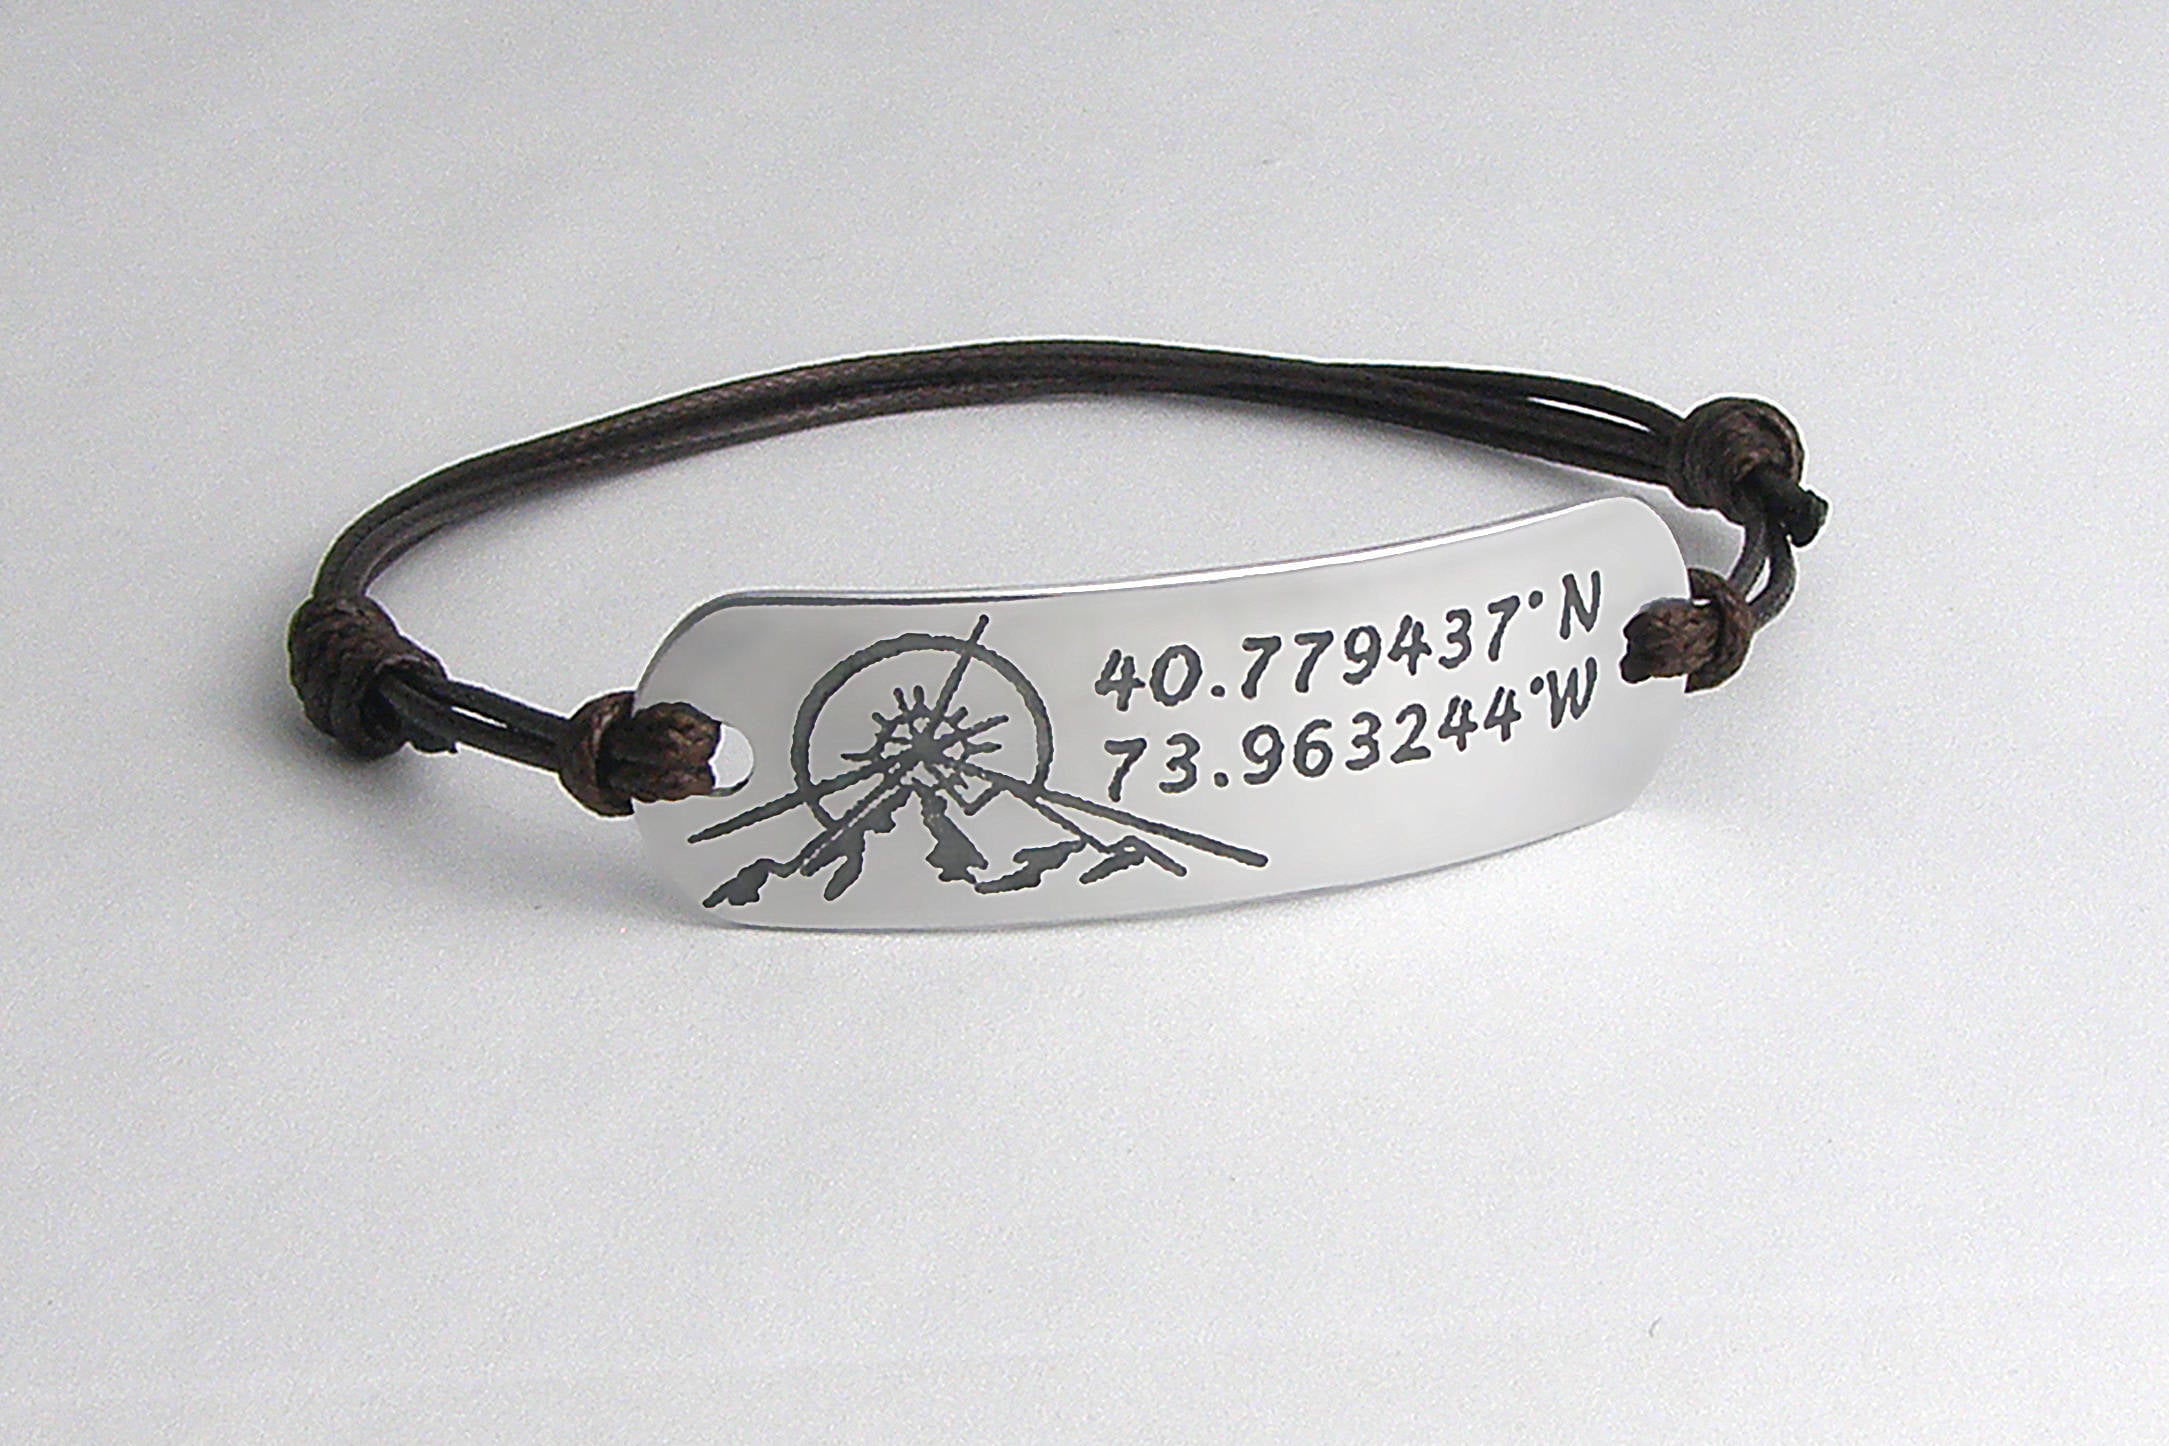 leather coordinate the bazaar bracelet modern copy customized of products personalized